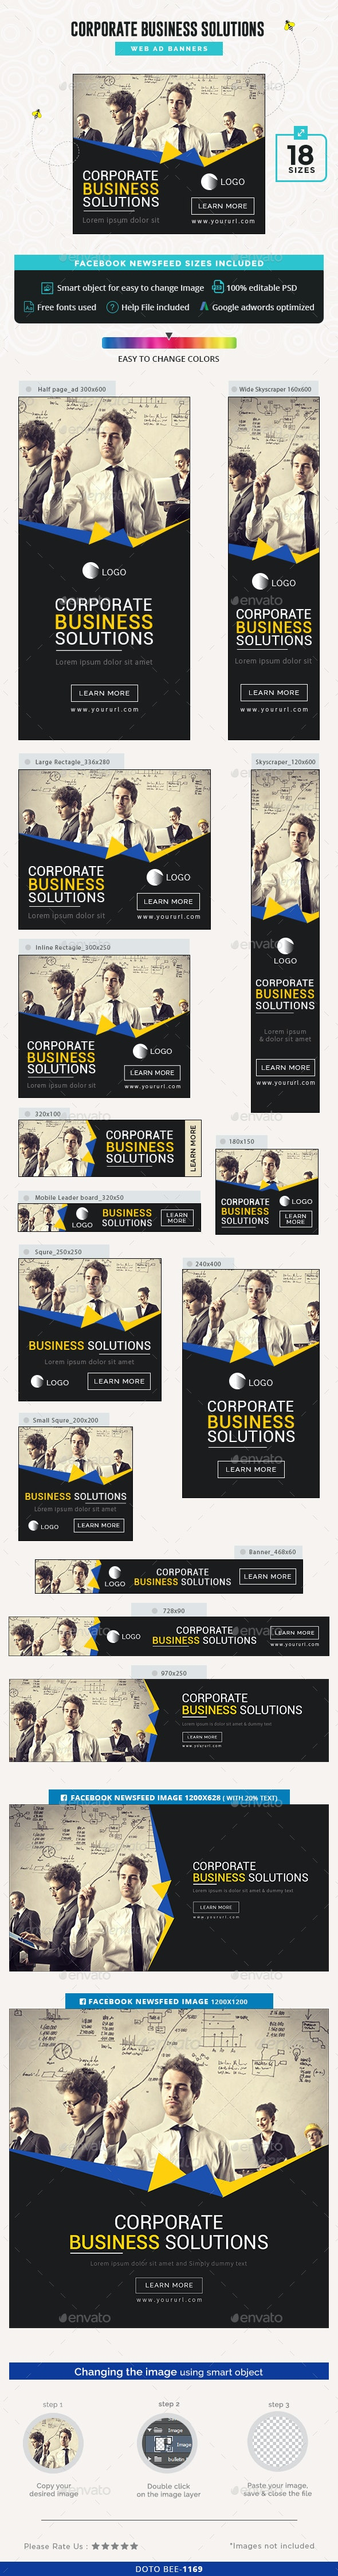 Corporate Business Banners - Banners & Ads Web Elements